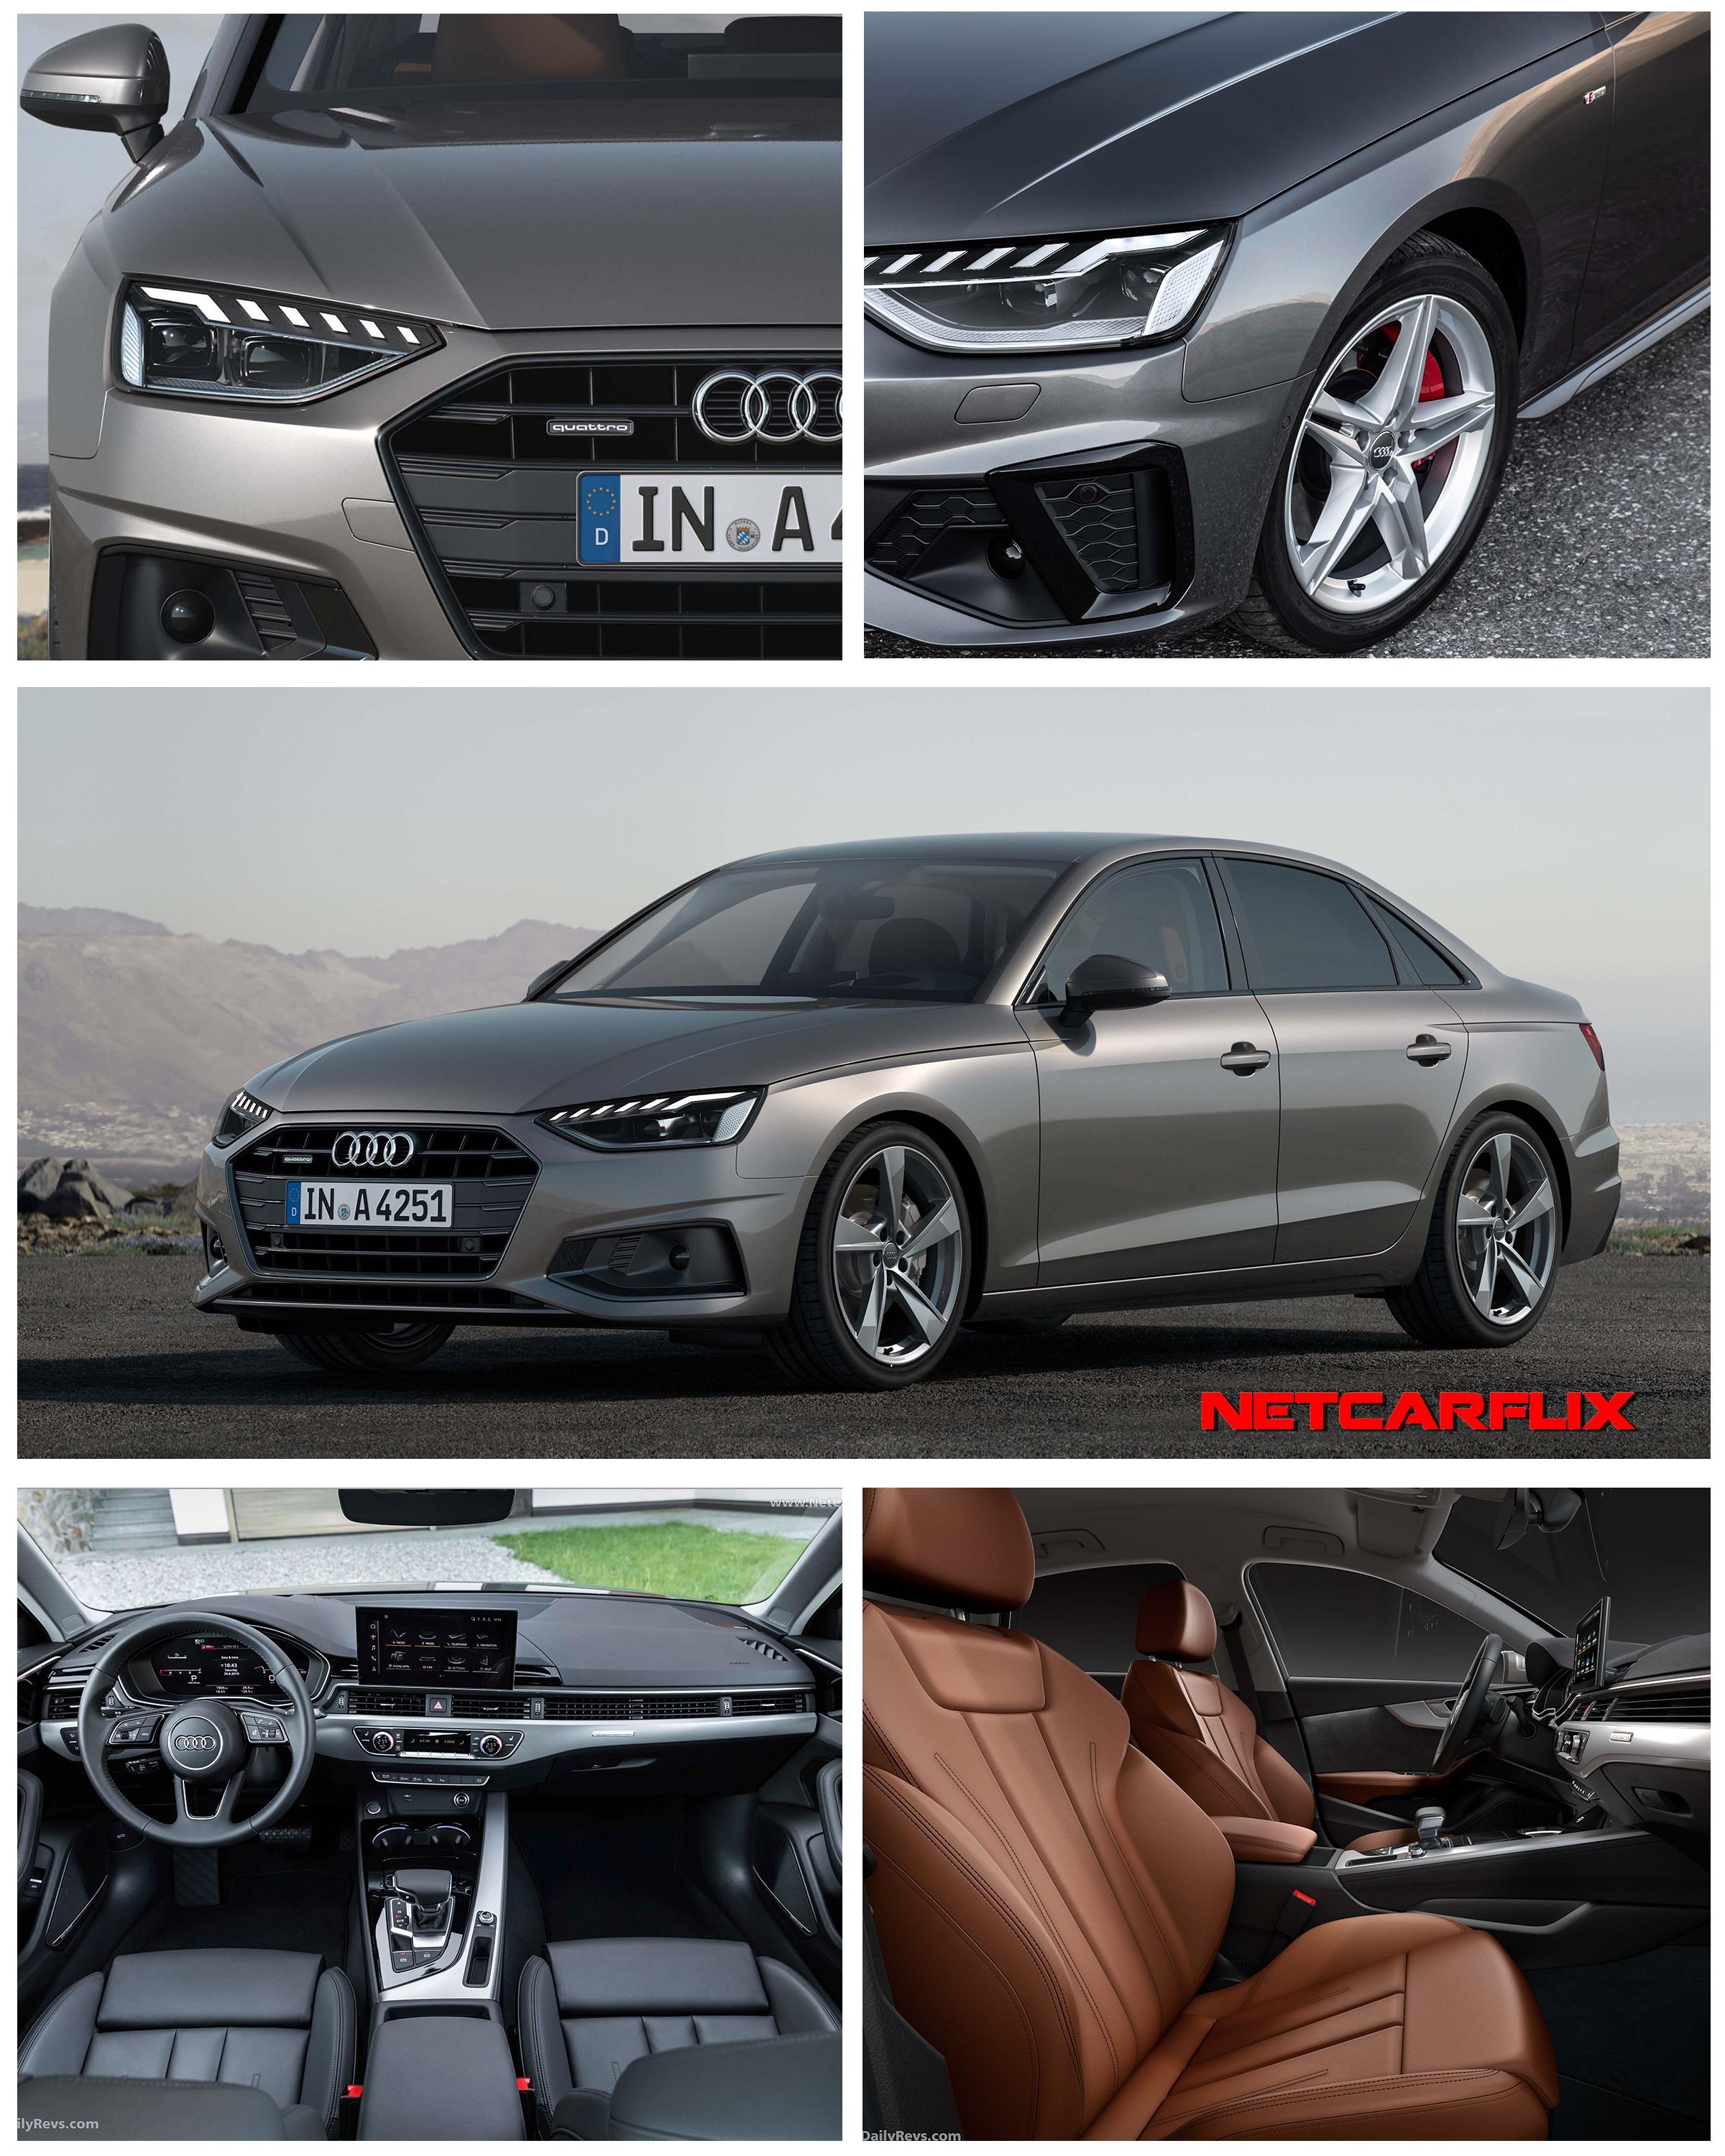 2020 Audi A4 Pictures, Images, Photos & Wallpapers (With